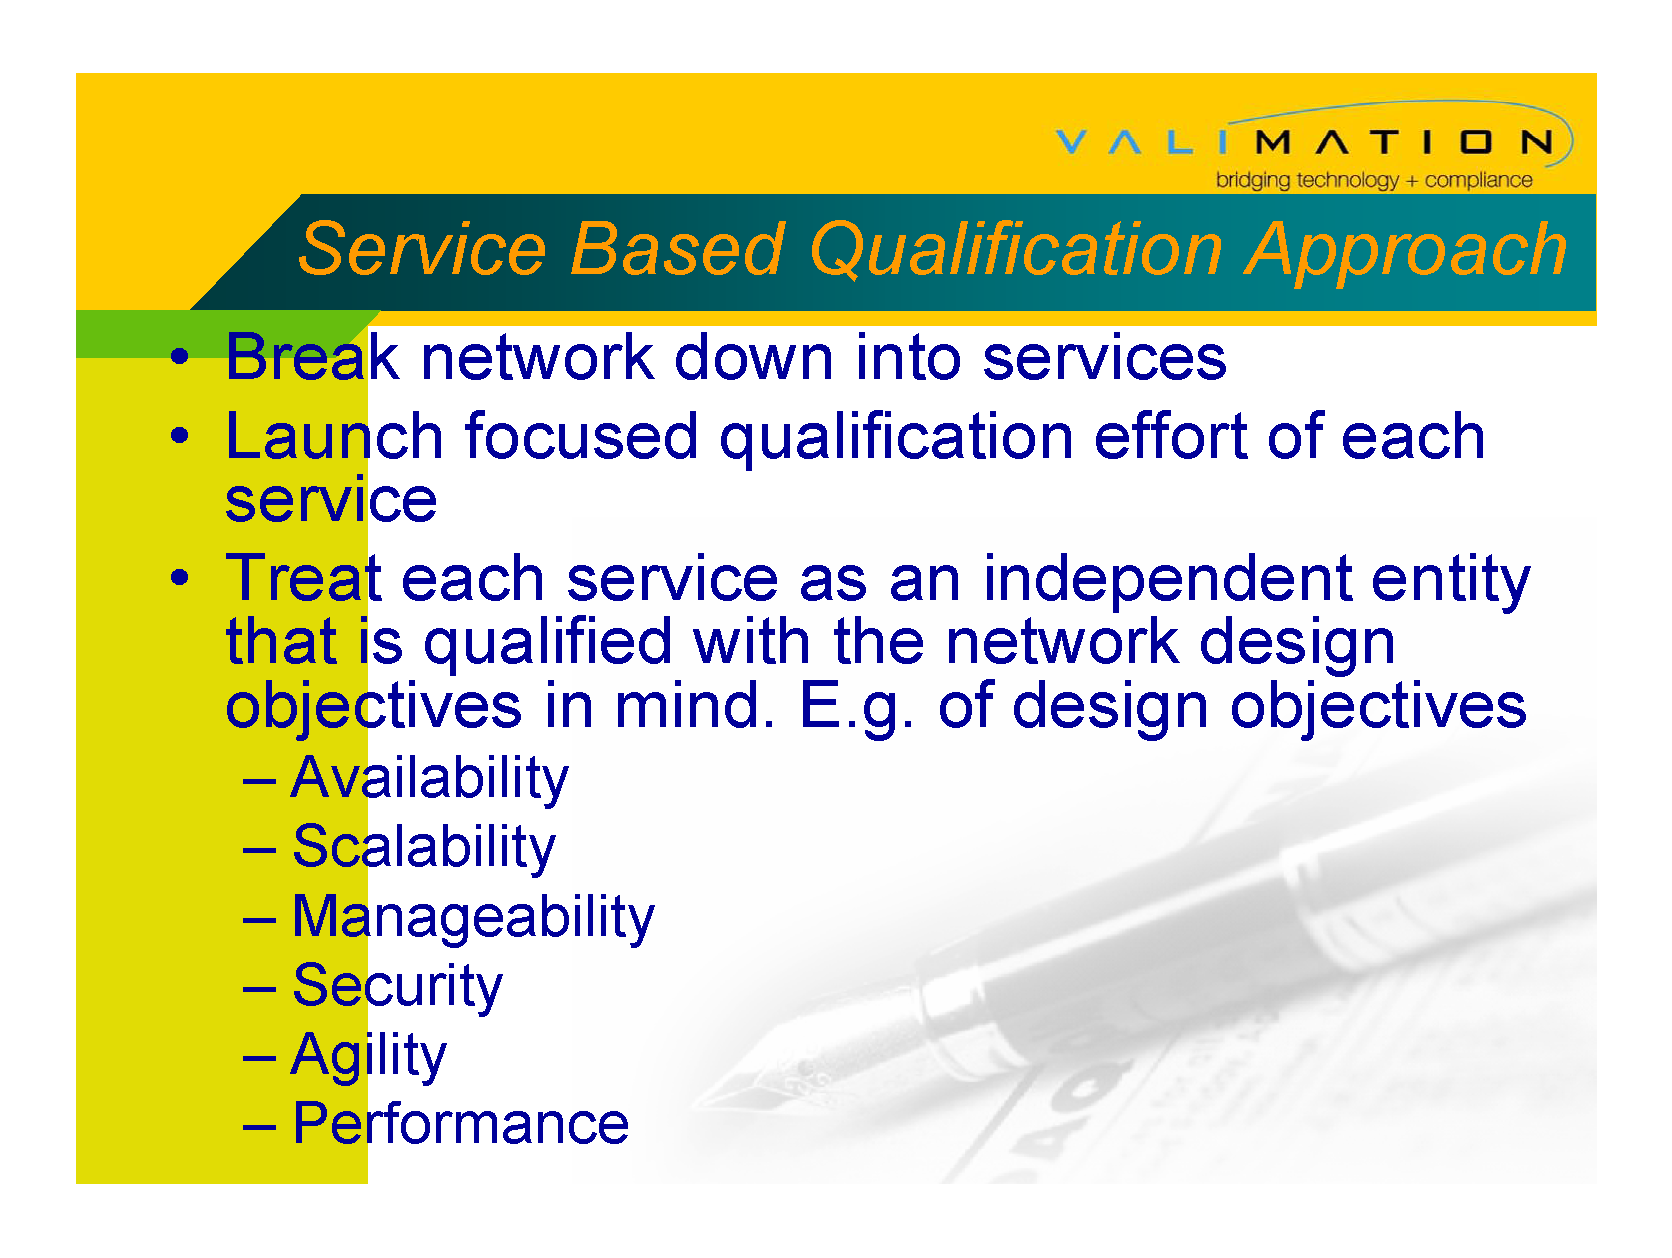 Network Qualification - Accretive Model By ValiMation_Page_08.png